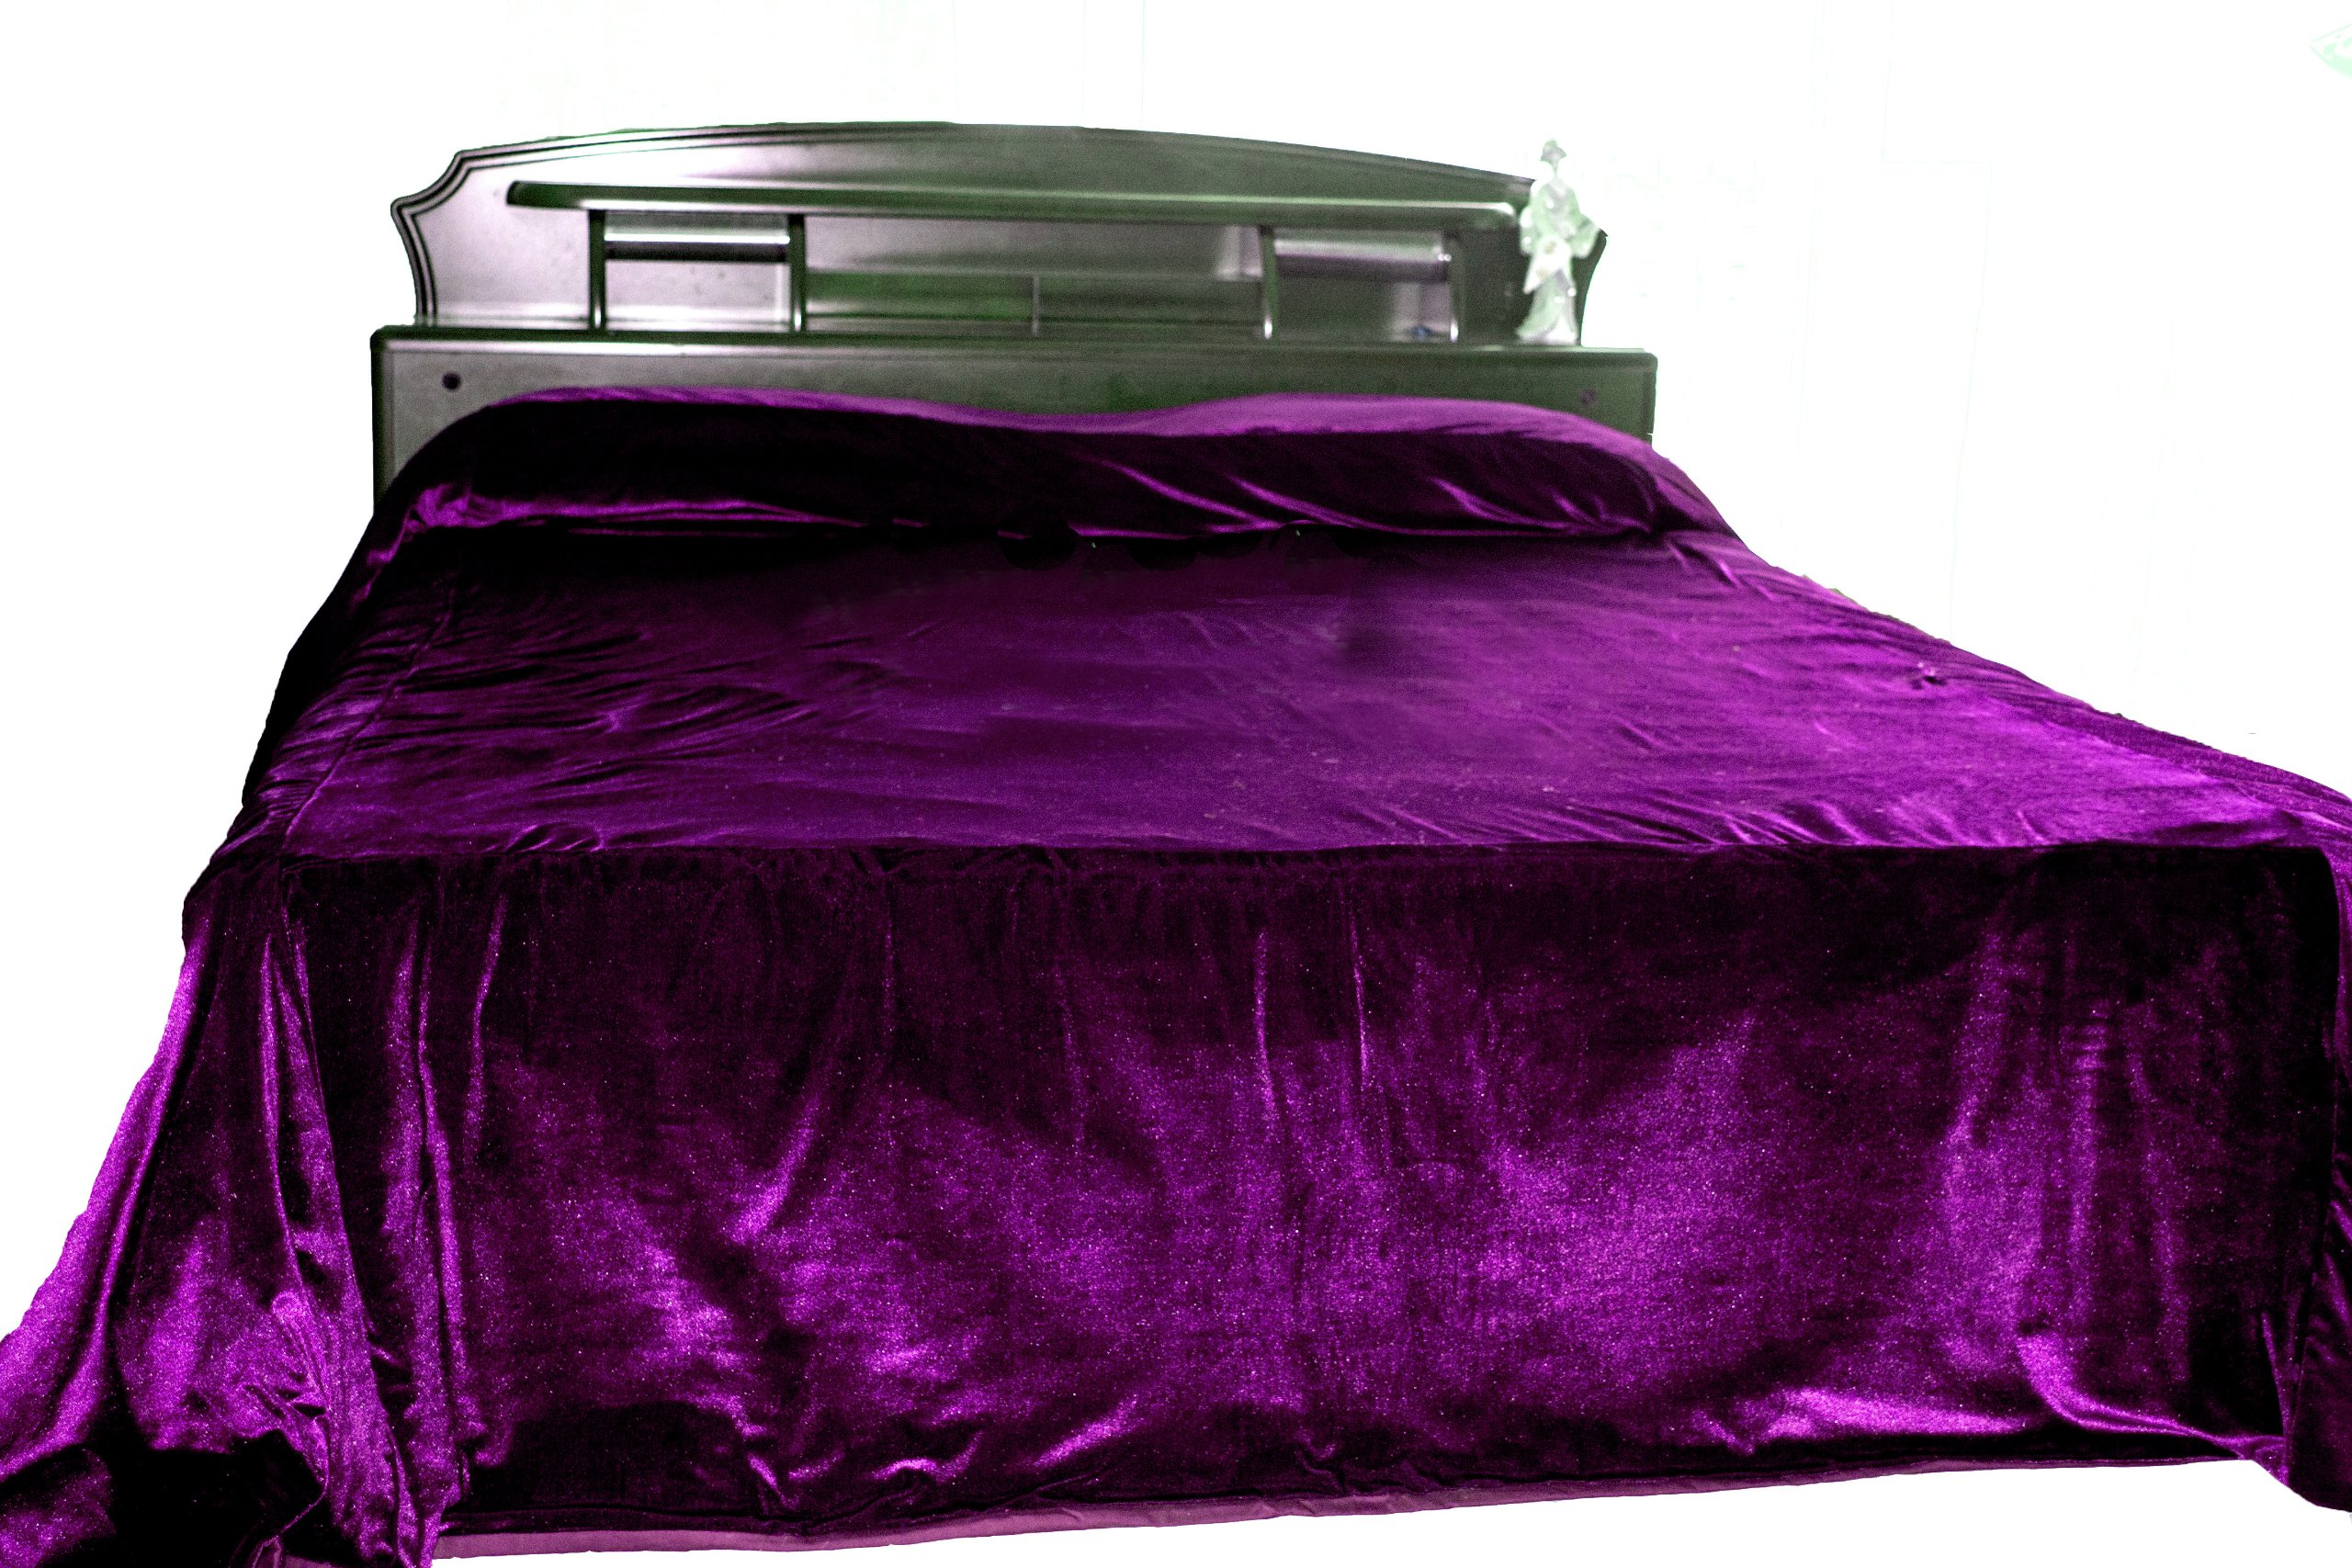 Amore Beaute Handmade Customizable Luxury Purple Bedspread - Couture Bed Cover in Luxe Velvet - Purple Coverlet - Bed Spread 110'' X 96'' - Wedding Anniversary Christmas Gifts by Amore Beaute